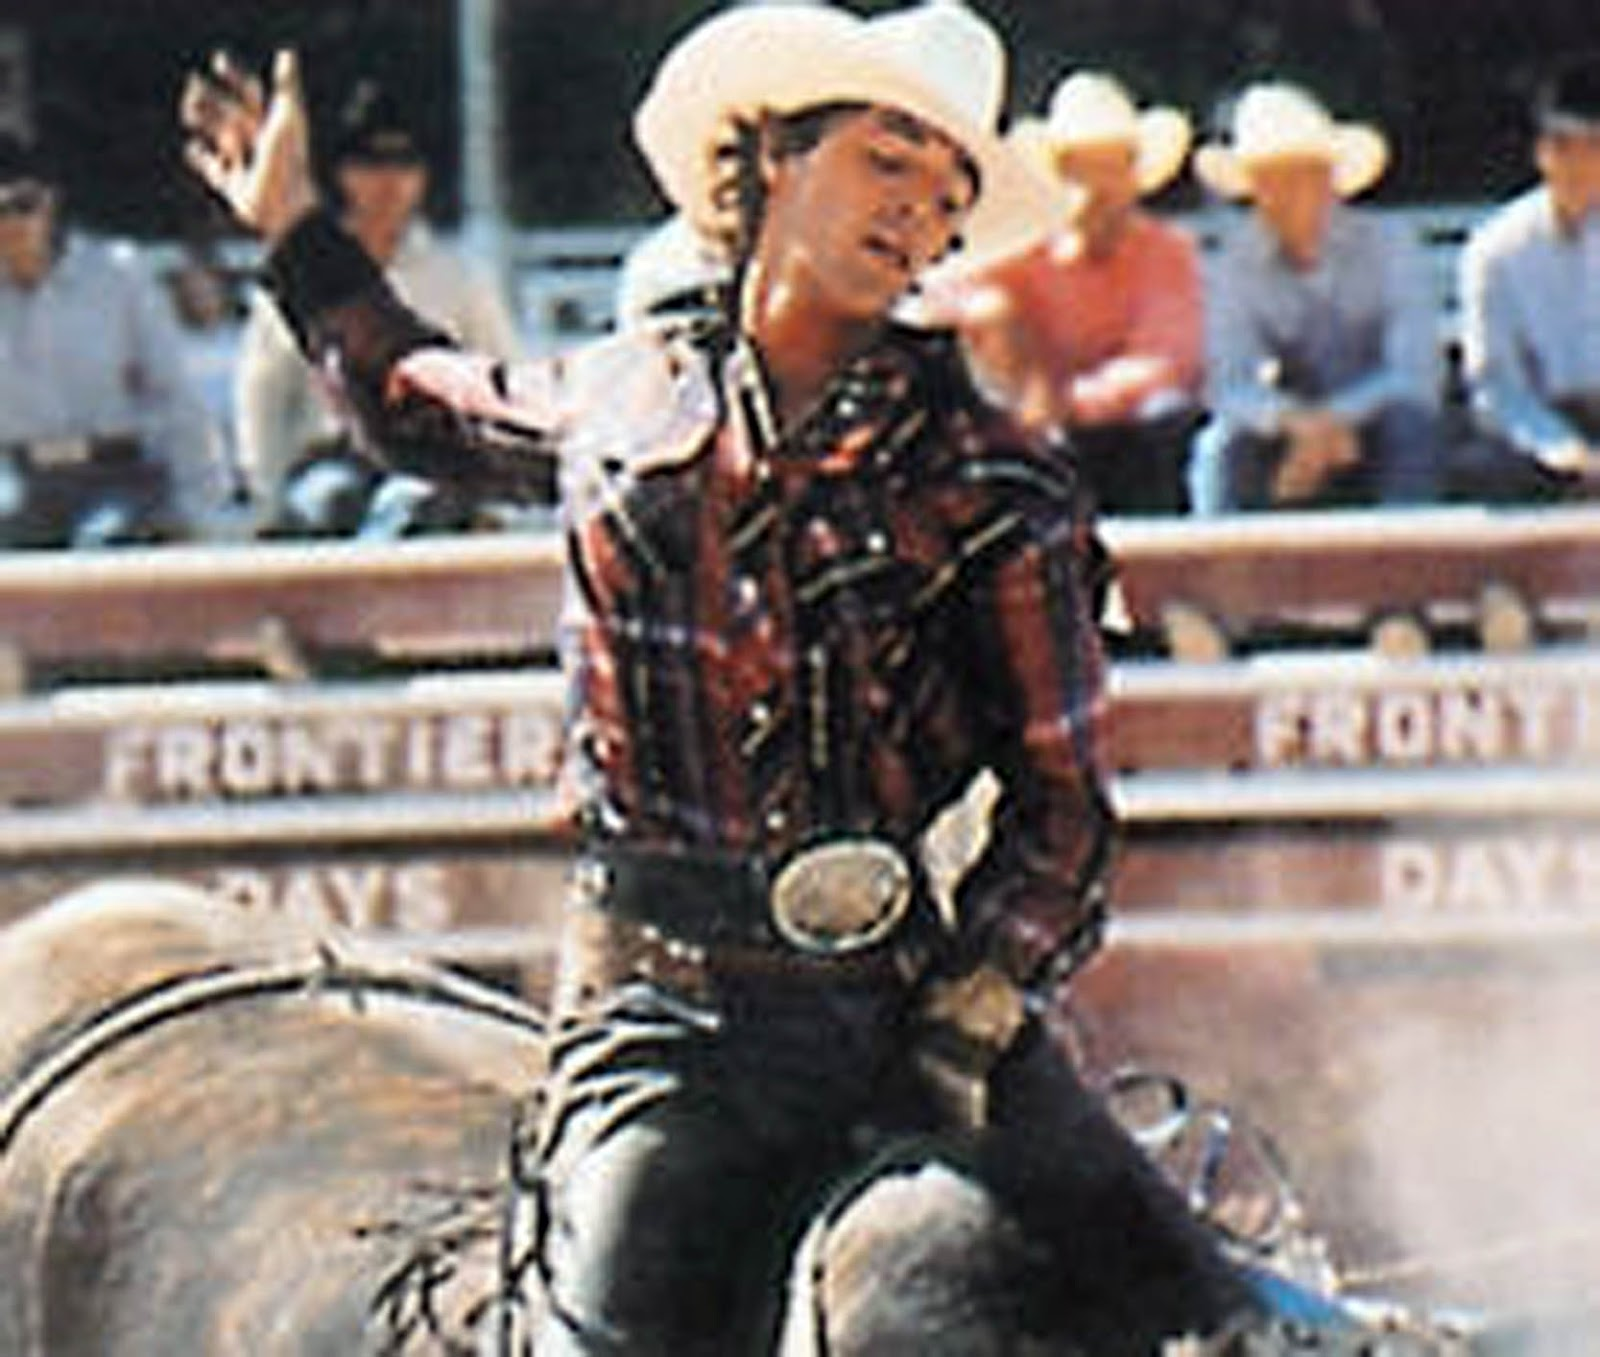 a review of lane frosts life and the movie eight seconds 8 seconds has 23 ratings and 5 reviews 8 seconds tells the life story of the late lane frost almost identical to the movie.